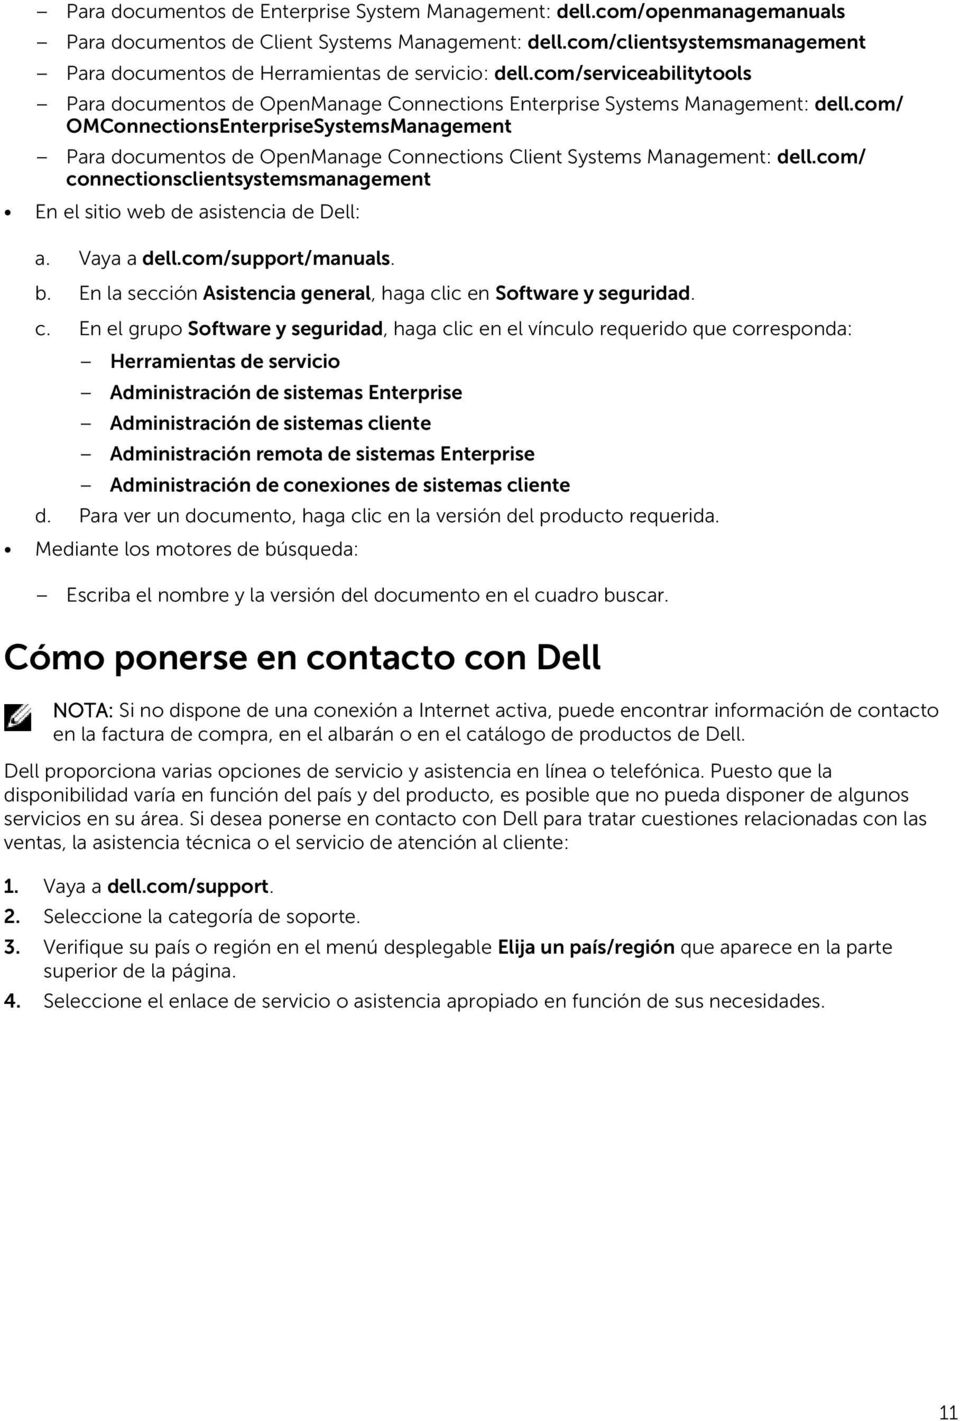 com/ OMConnectionsEnterpriseSystemsManagement Para documentos de OpenManage Connections Client Systems Management: dell.